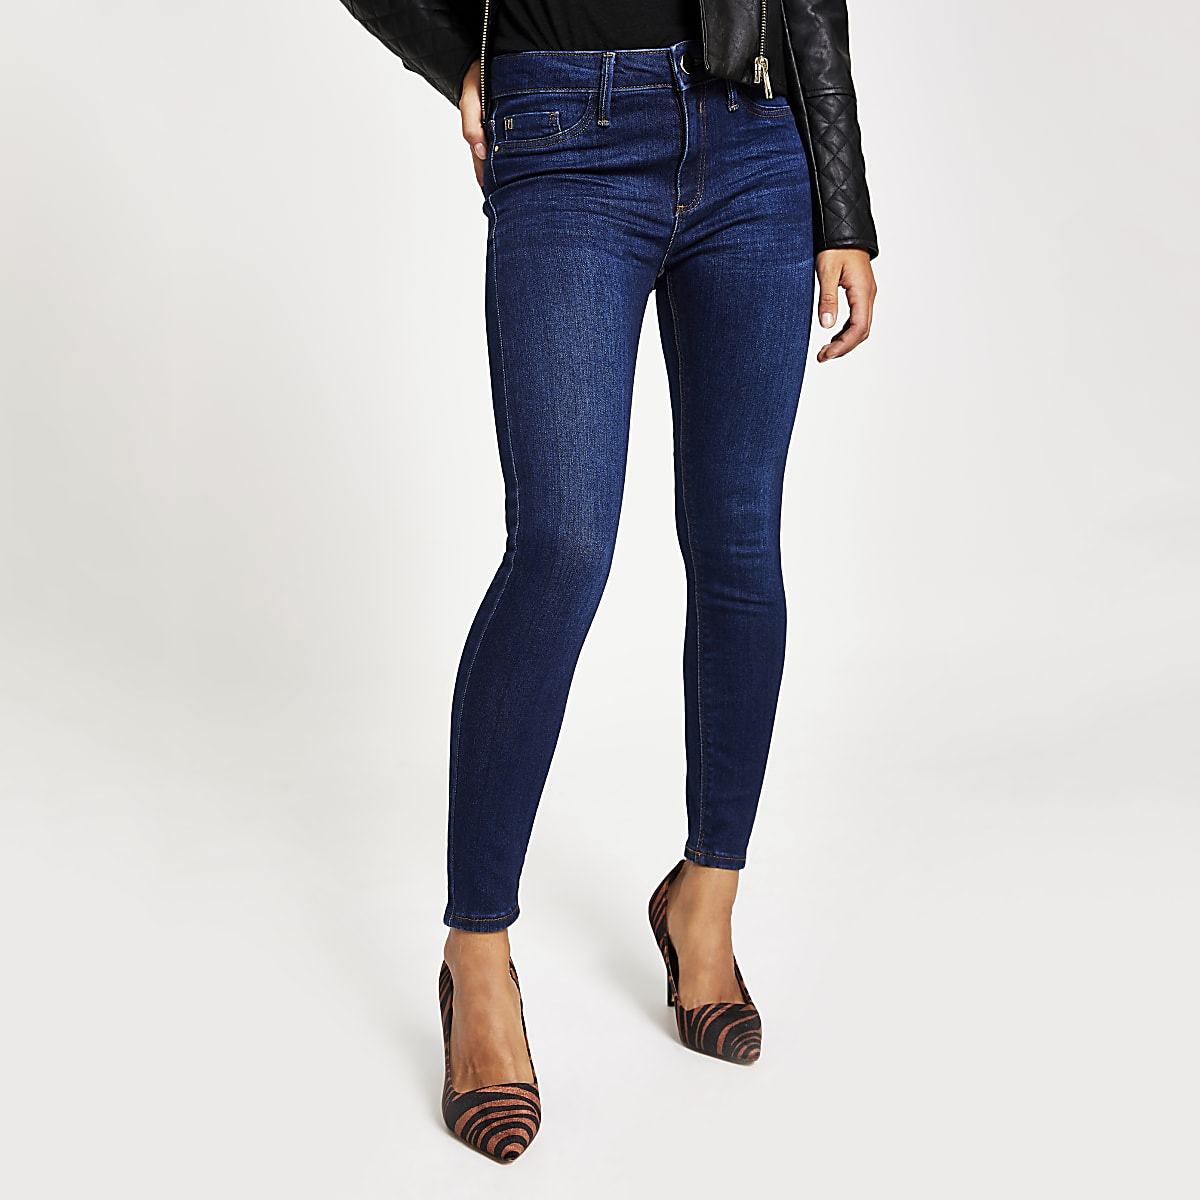 Petite denim mid rise skinny Molly jeggings